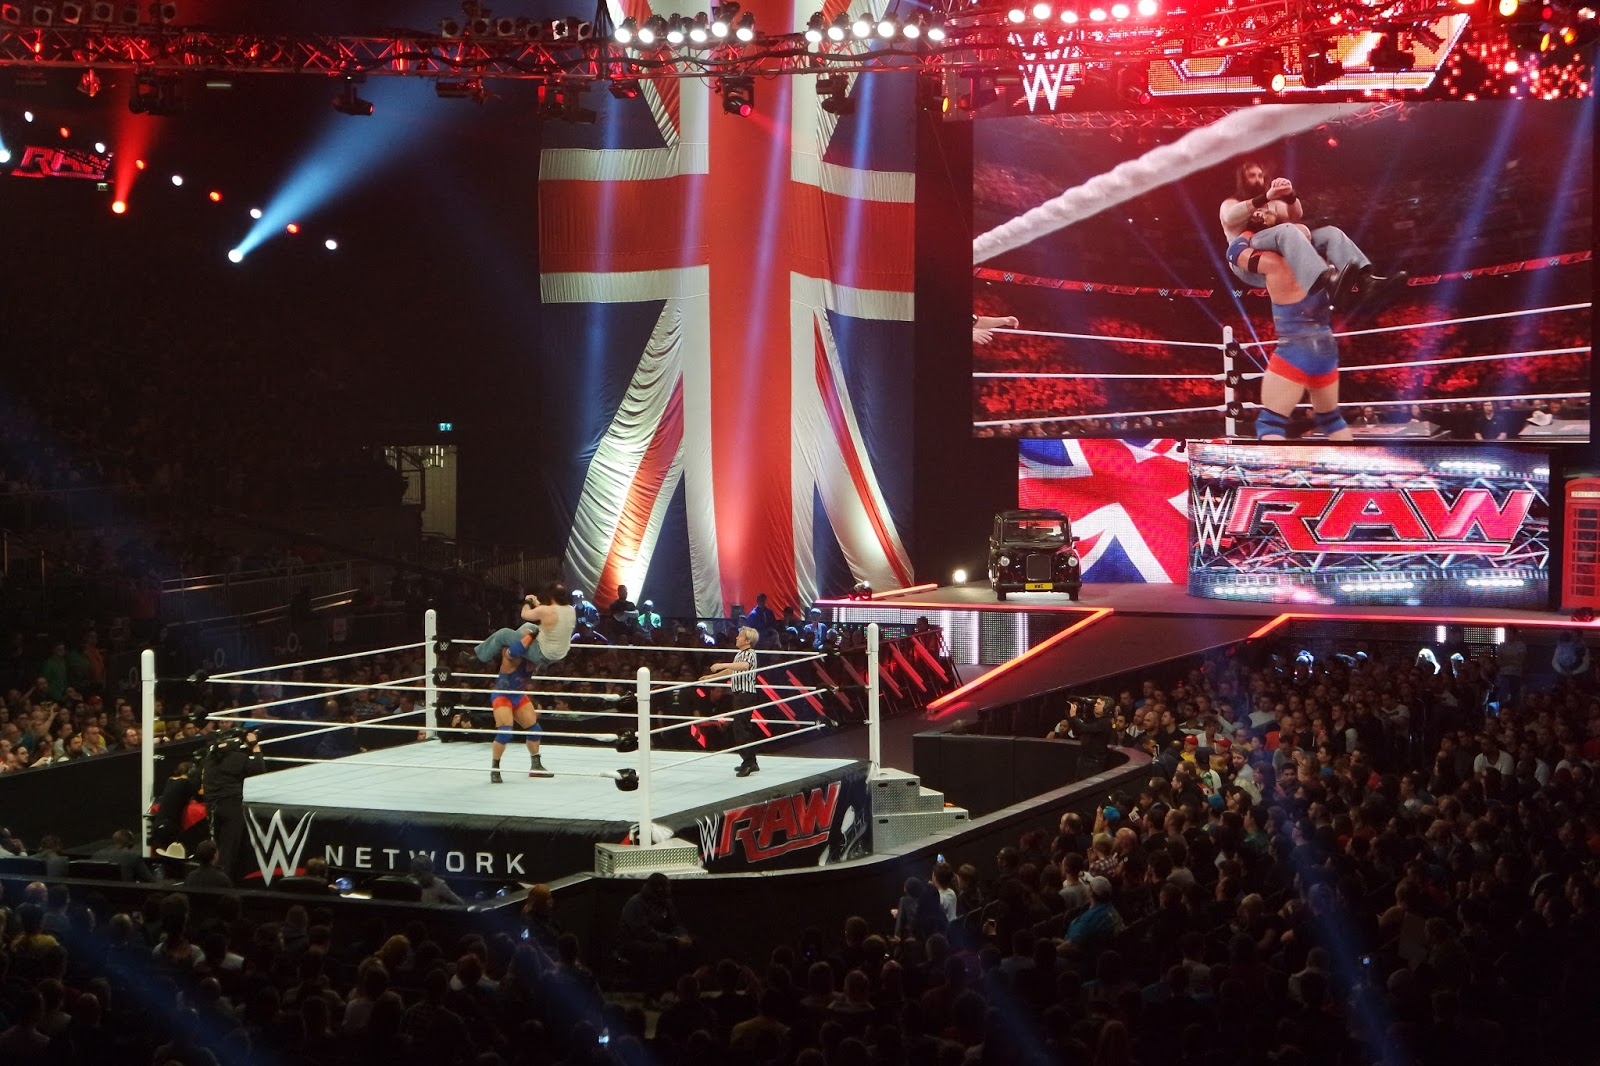 WWE RAW London O2 arena show and pre-show party